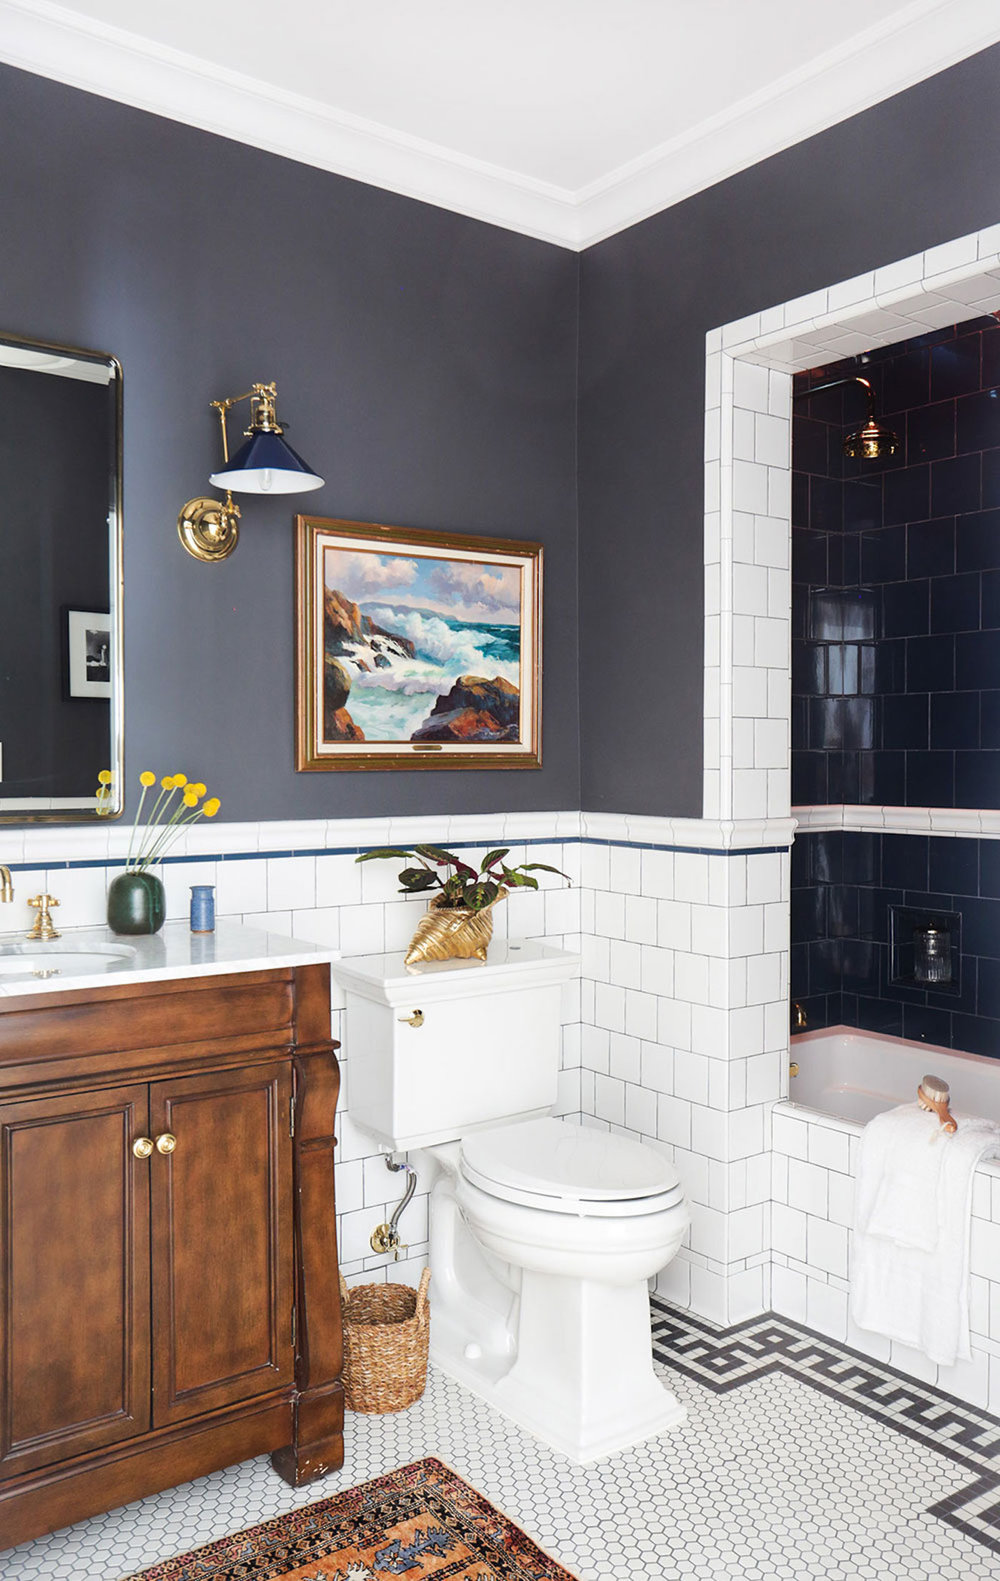 Top 10: Most Popular House & Home Pinterest Images In February - A mix of tile styles create an eclectic look in this bathroom while a warm wood vanity and rug act as the accent pieces.